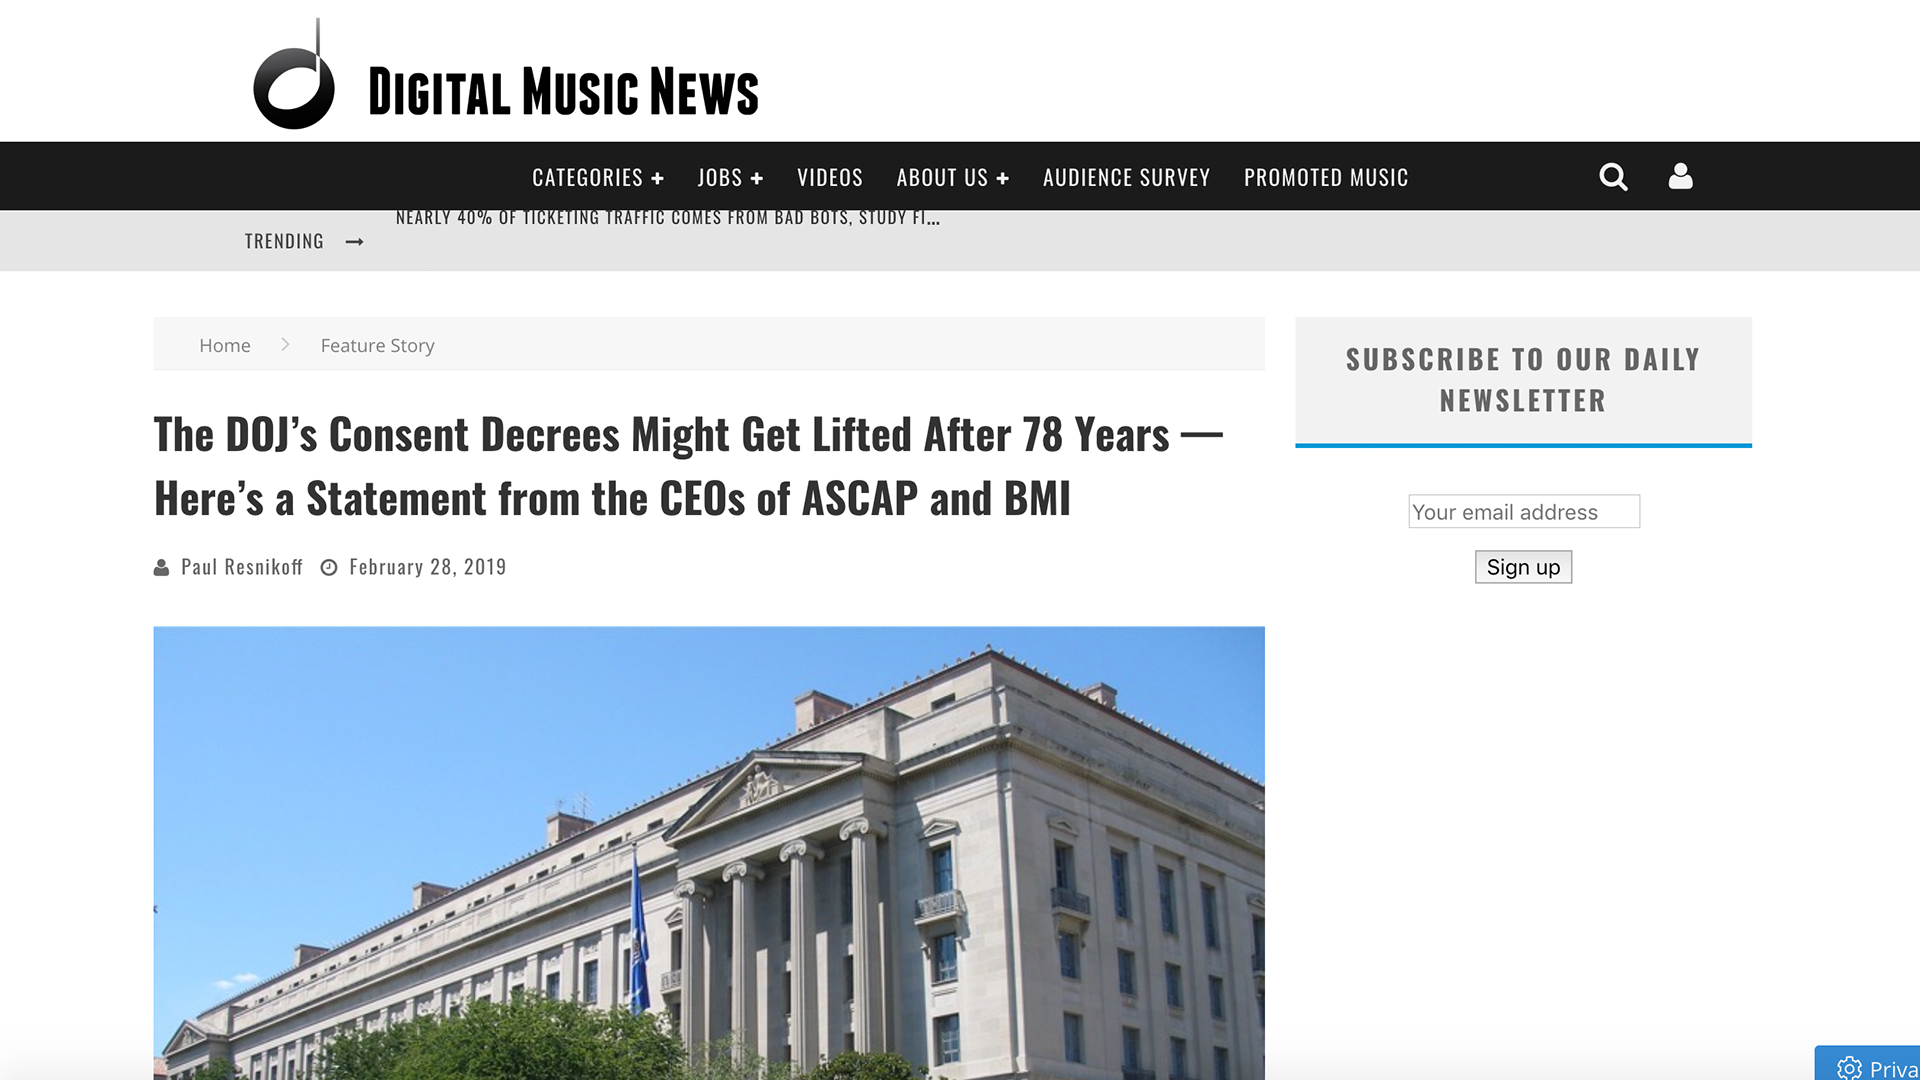 Fairness Rocks News The DOJ's Consent Decrees Might Get Lifted After 78 Years — Here's a Statement from the CEOs of ASCAP and BMI